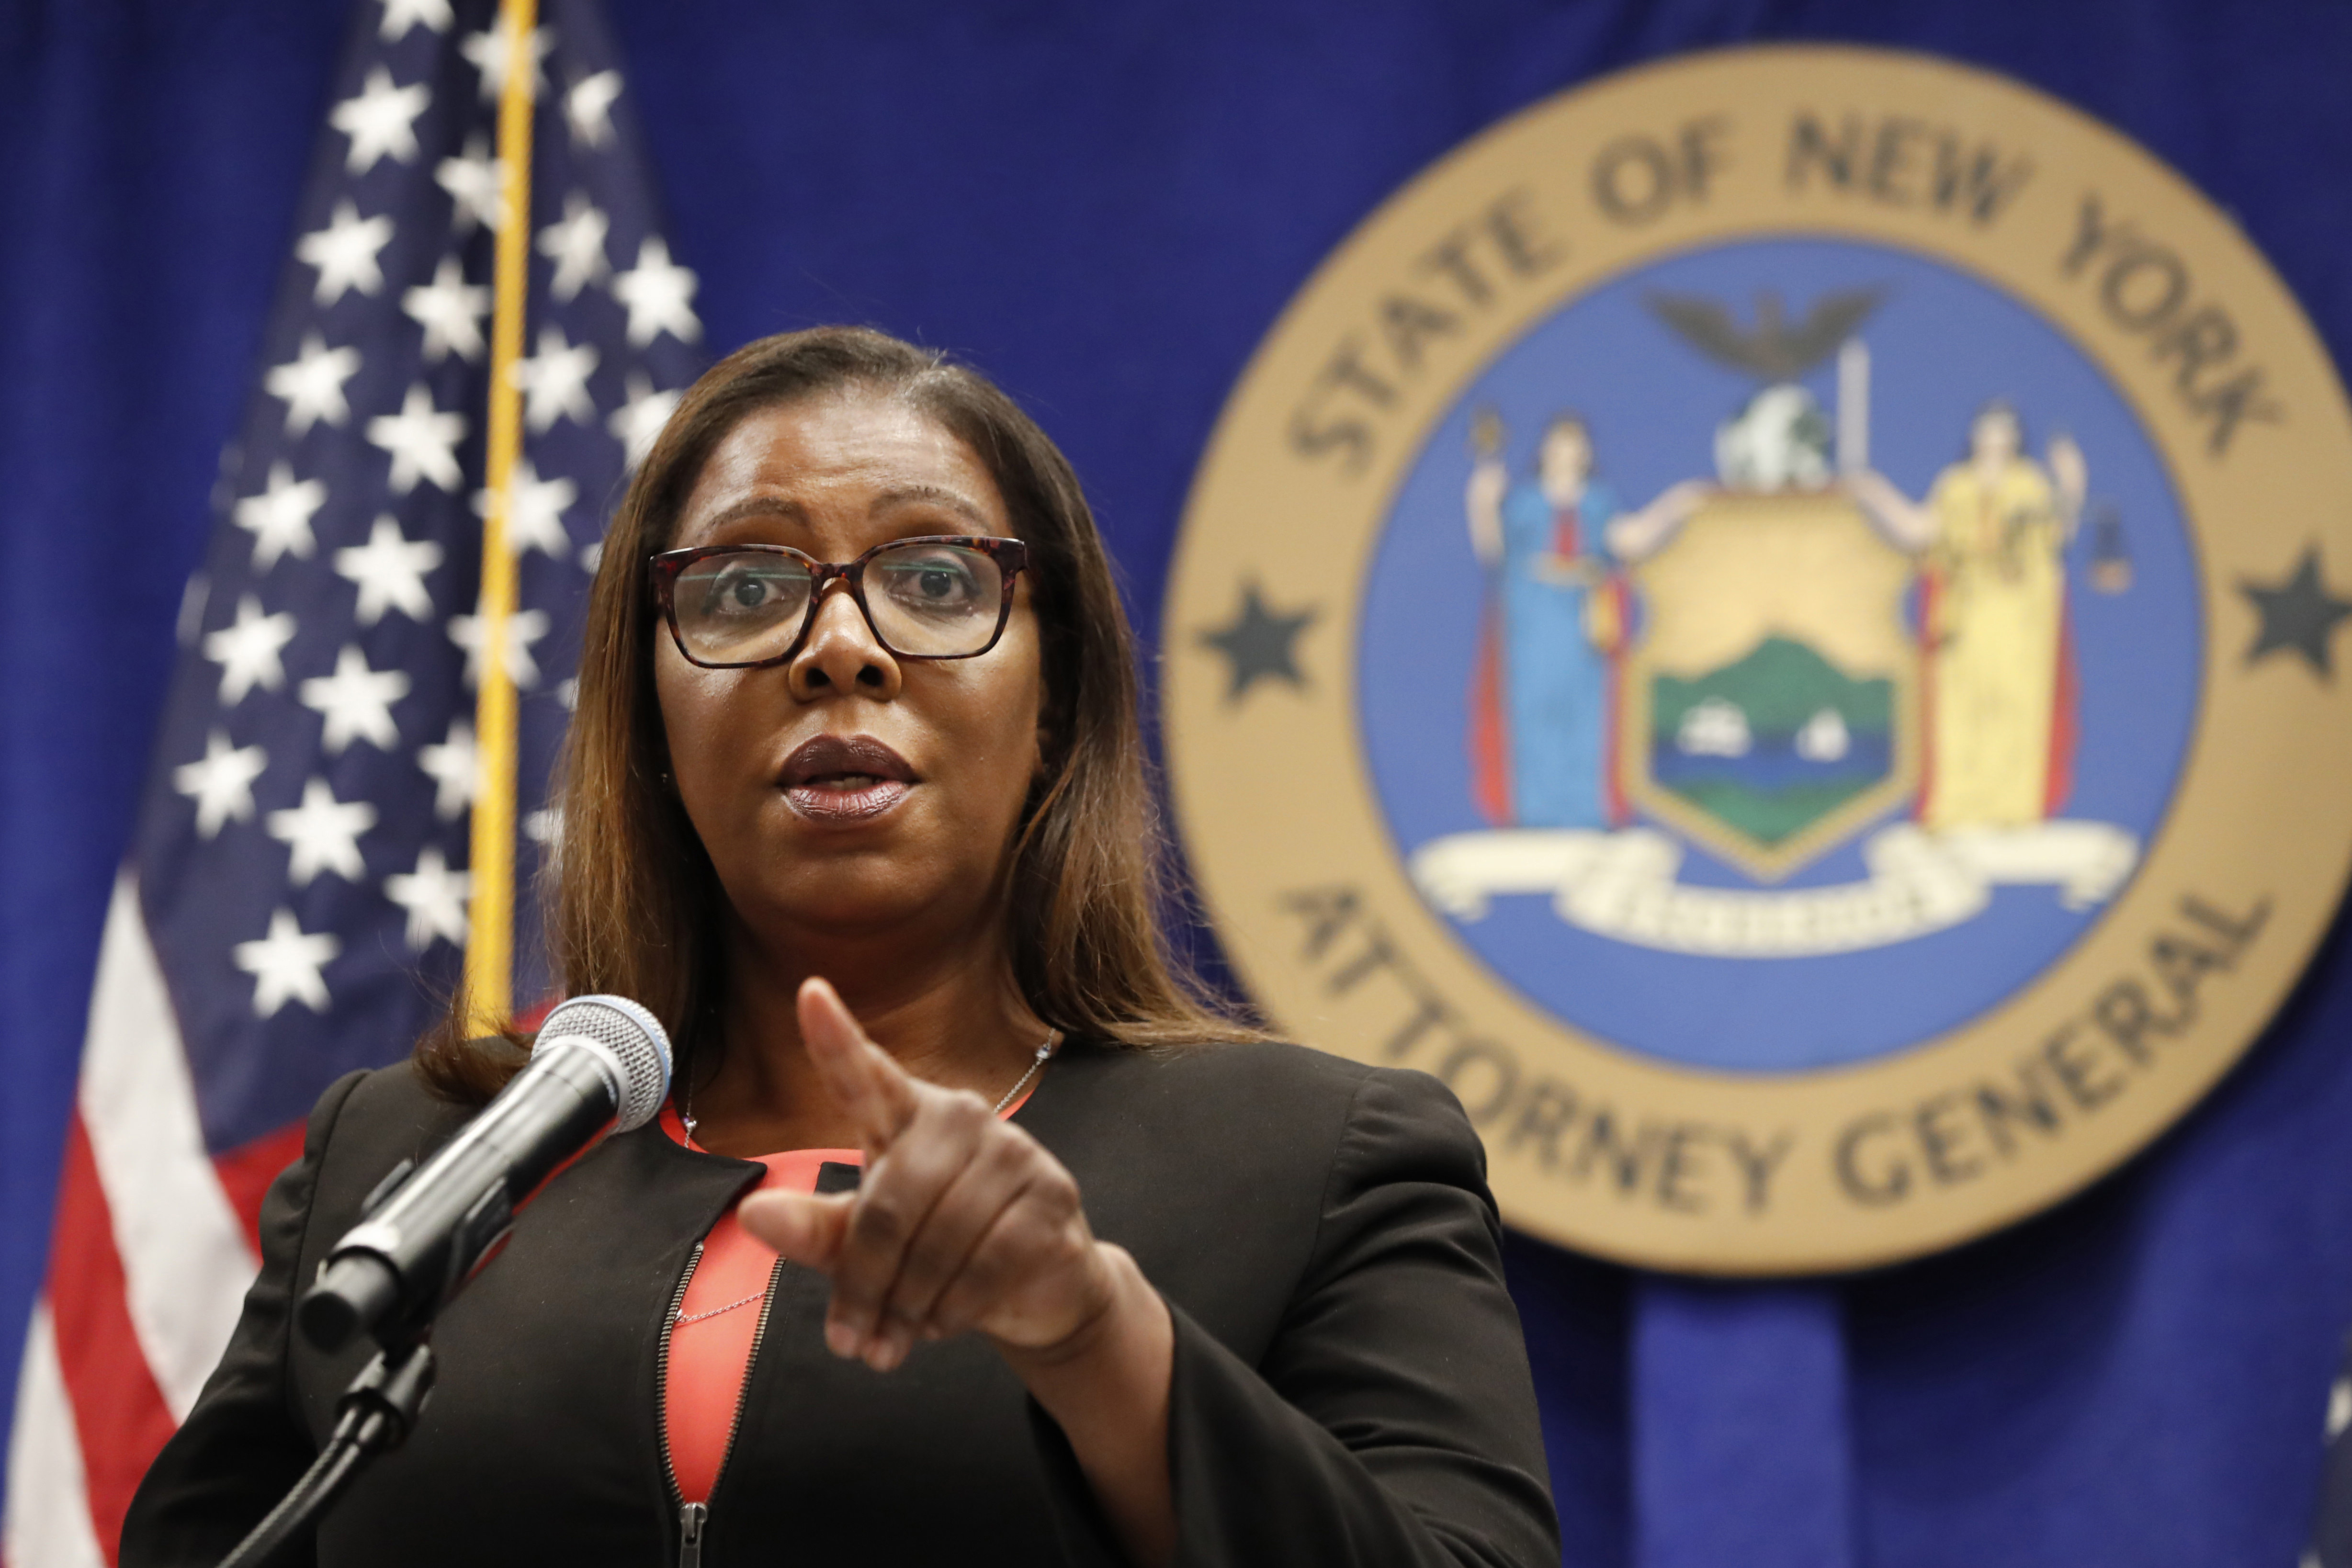 FILE- In this Aug. 6, 2020 file photo, New York State Attorney General Letitia James takes a question at a news conference in New York. James said on Saturday, Sept. 5, 2020 that she will impanel a grand jury to look into the death of Daniel Prude. Prude, 41, apparently stopped breathing as police in Rochester, N.Y. were restraining him in March 2020 and died when he was taken off life support a week later. Photo: AP